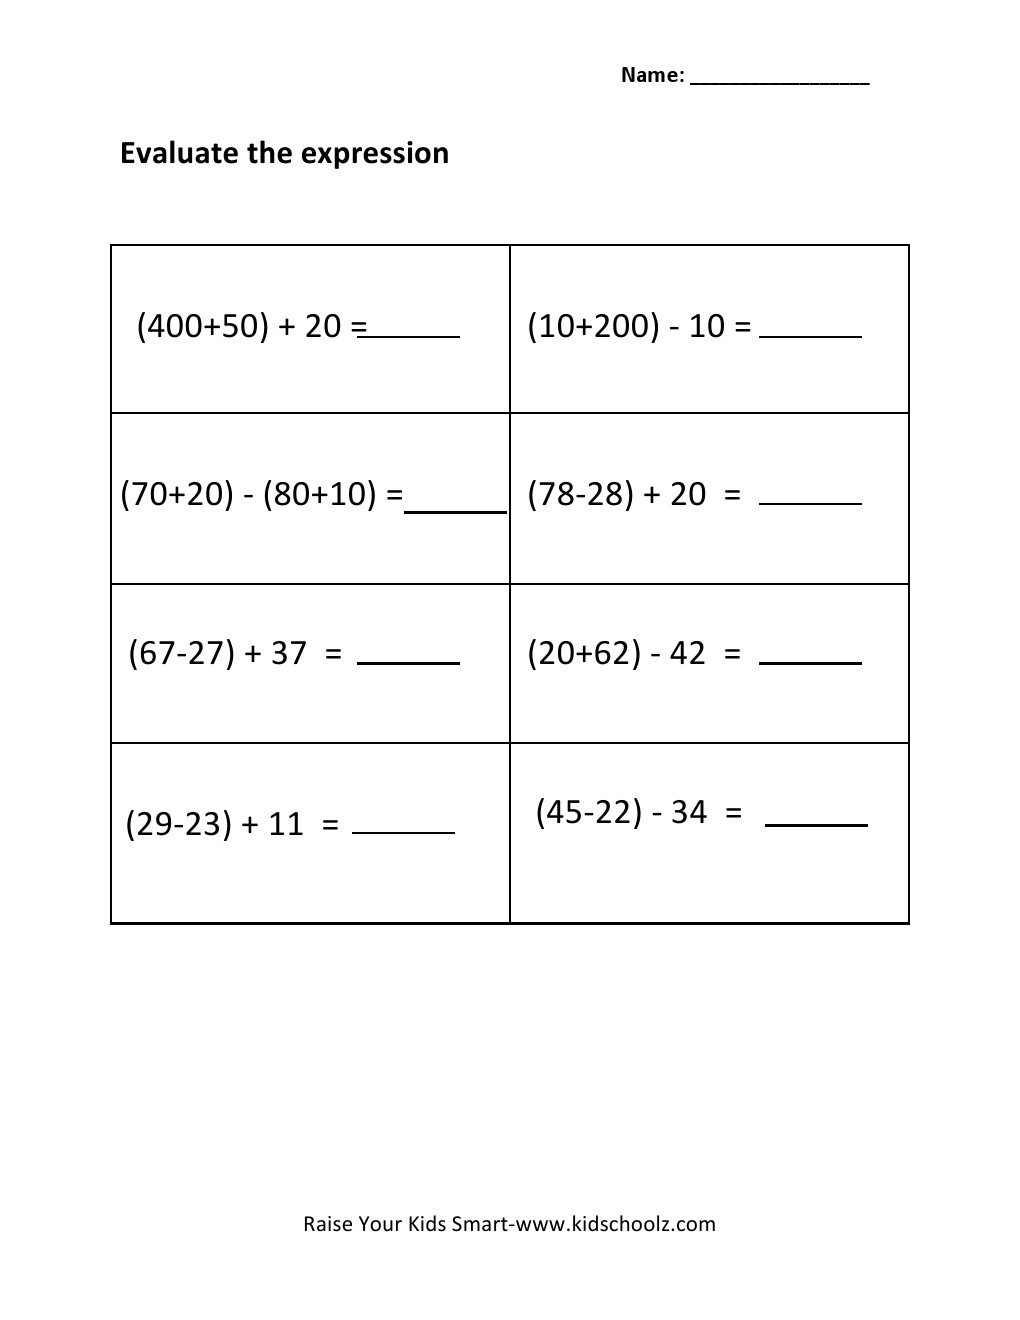 Printables Evaluate Expressions Worksheet worksheets evaluate algebraic expressions worksheet laurenpsyk grade 3 evaluating 2 worksheet